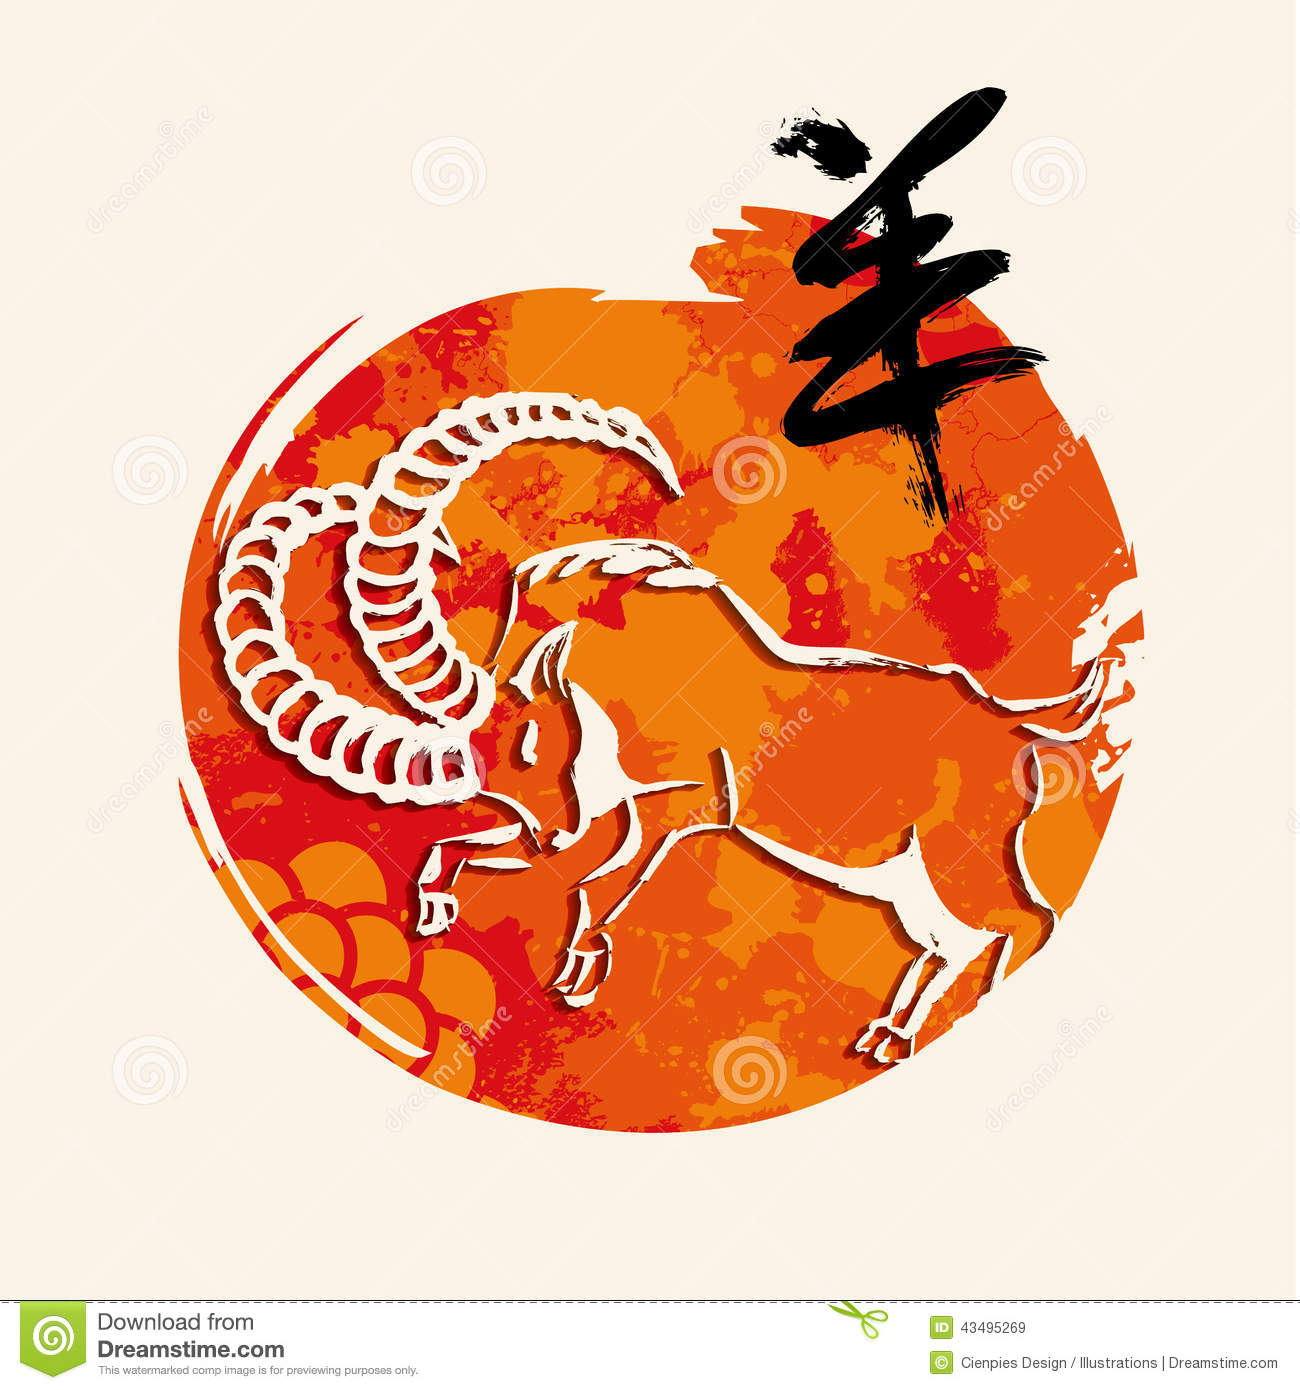 Chinese new year greeting card stock vector illustration of.